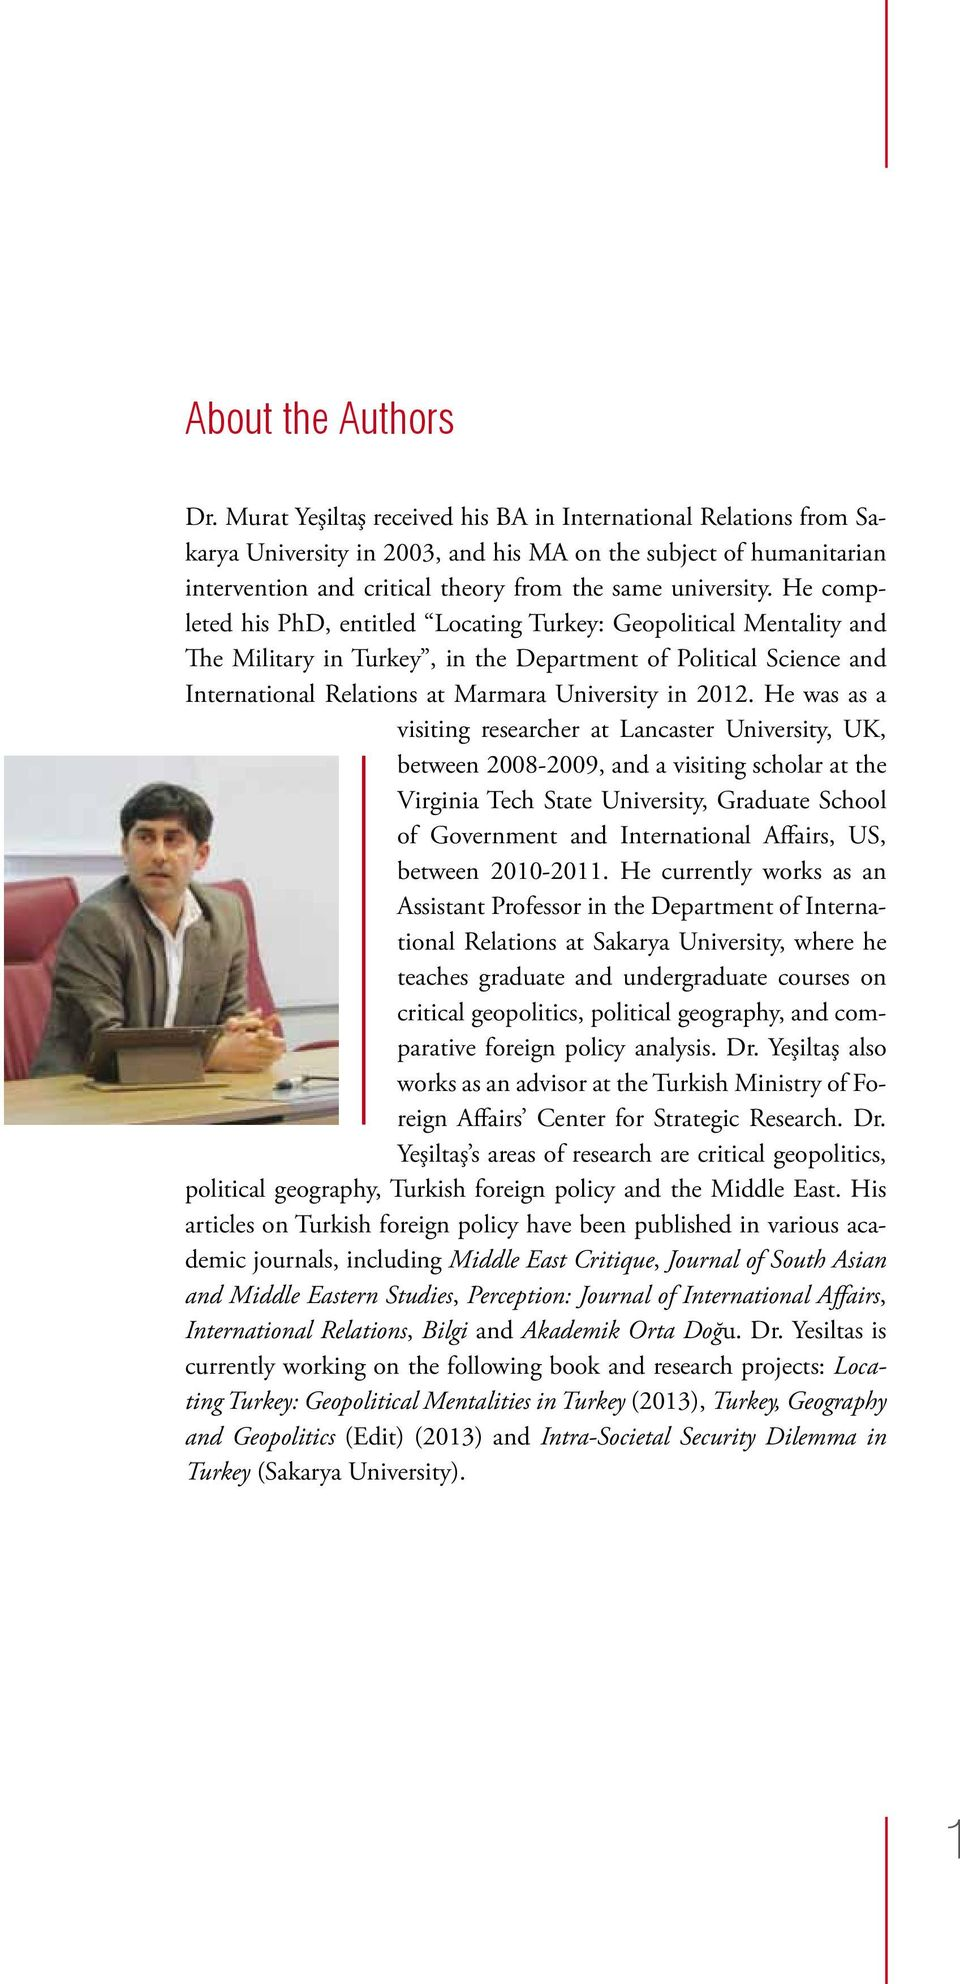 He completed his PhD, entitled Locating Turkey: Geopolitical Mentality and The Military in Turkey, in the Department of Political Science and International Relations at Marmara University in 2012.